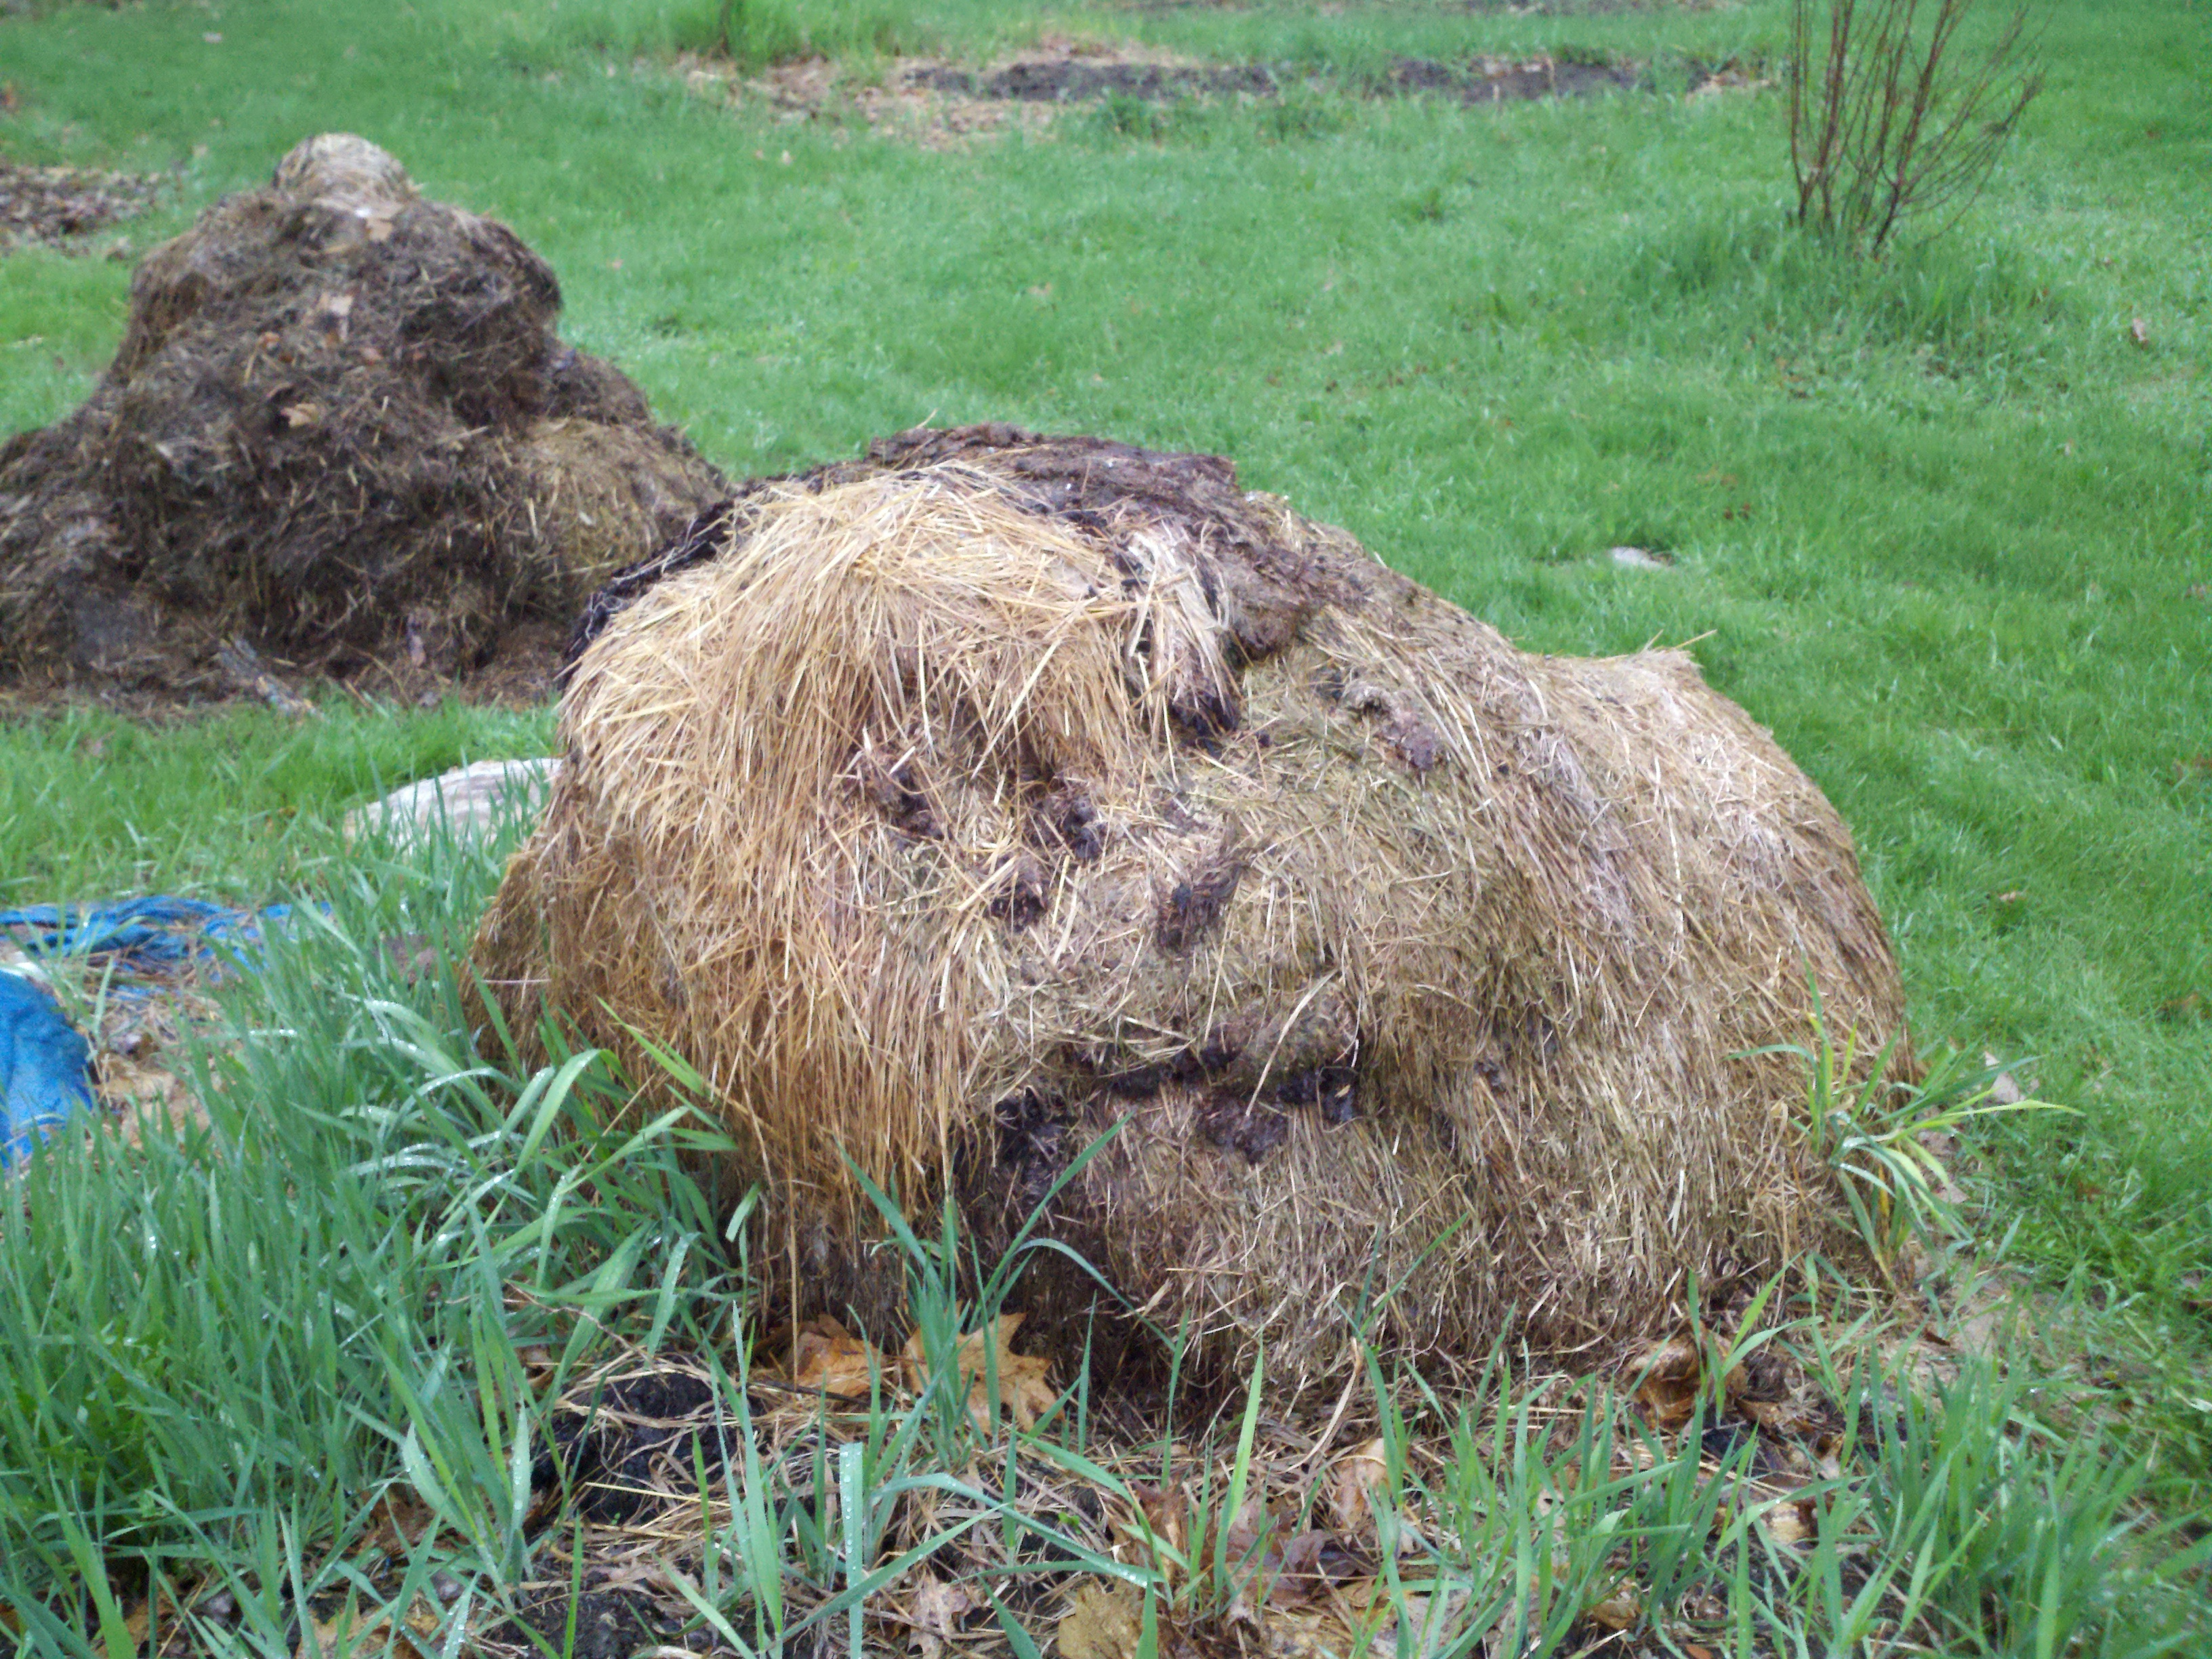 Just a funny face in the bale